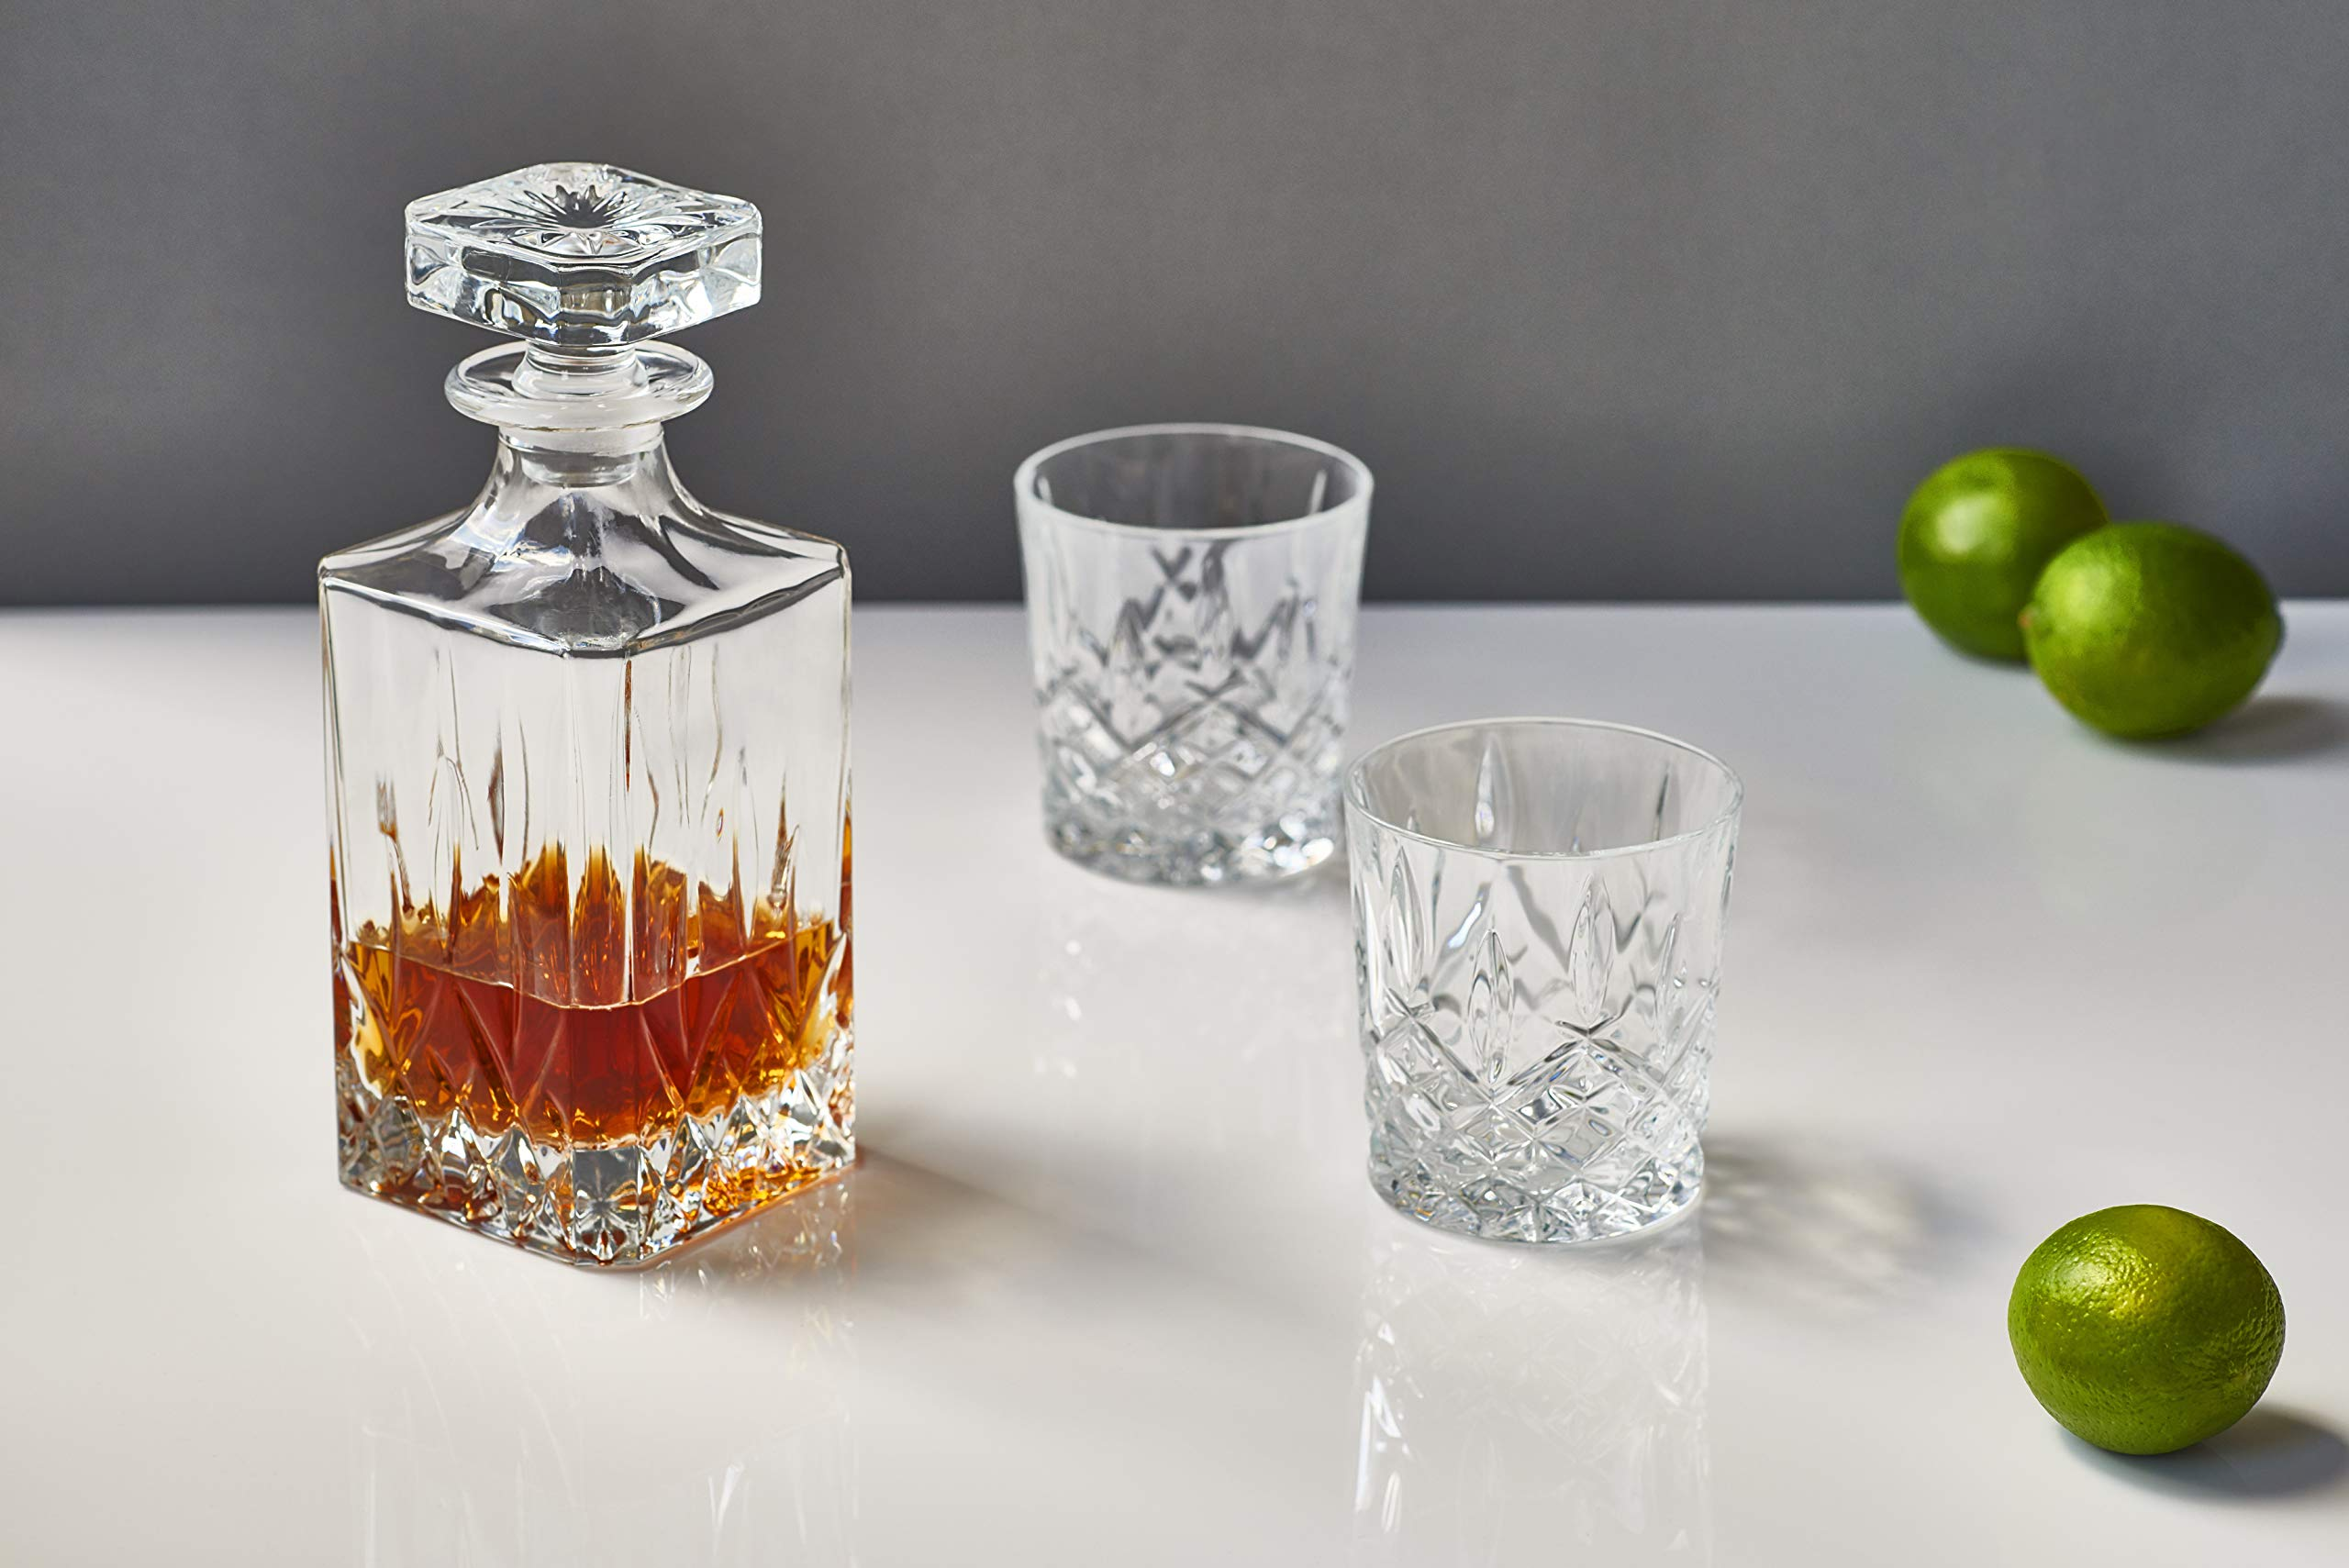 Marquis by Waterford 165118 Markham Double Old Fashioned Glasses, Set of 4 by Marquis By Waterford (Image #3)